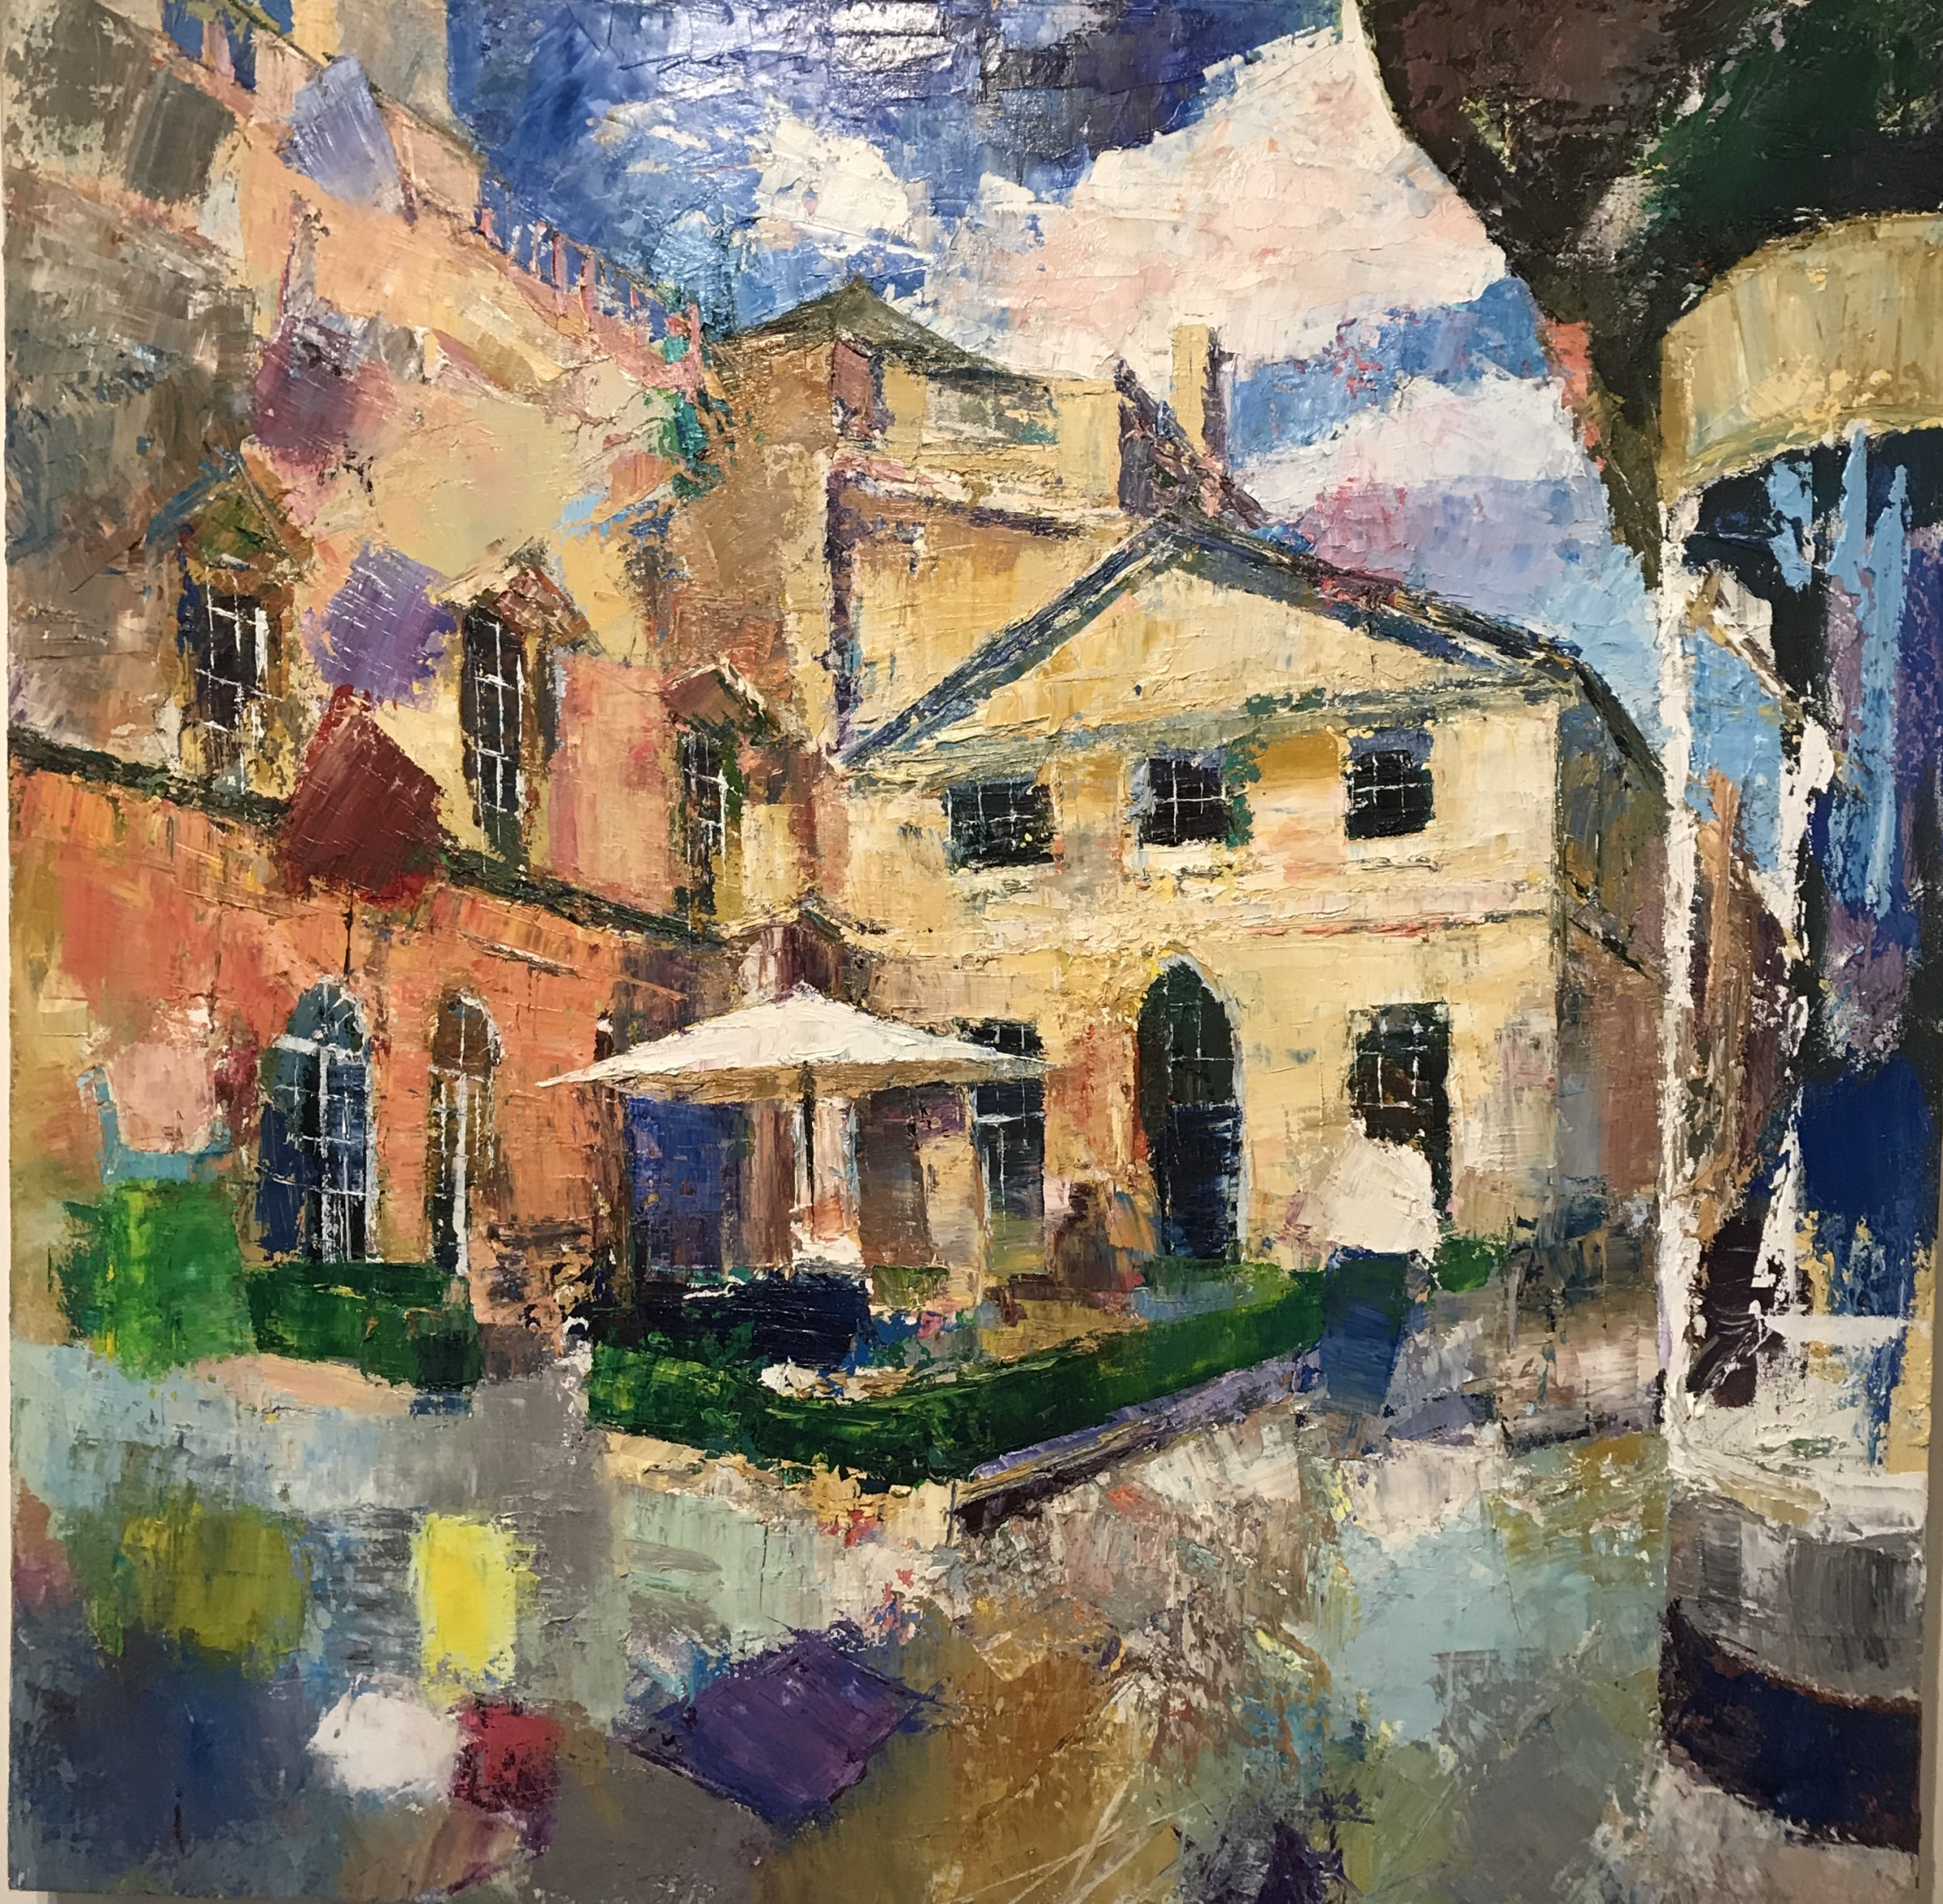 "<span class=""link fancybox-details-link""><a href=""/artists/49-stephen-bishop/works/327-stephen-bishop-bath-assembly-rooms/"">View Detail Page</a></span><div class=""artist""><strong>Stephen Bishop</strong></div> <div class=""title""><em>Bath Assembly Rooms</em></div> <div class=""medium"">Acrylic on Canvas</div> <div class=""dimensions"">92 x 92 cm</div><div class=""price"">£1,250.00</div>"